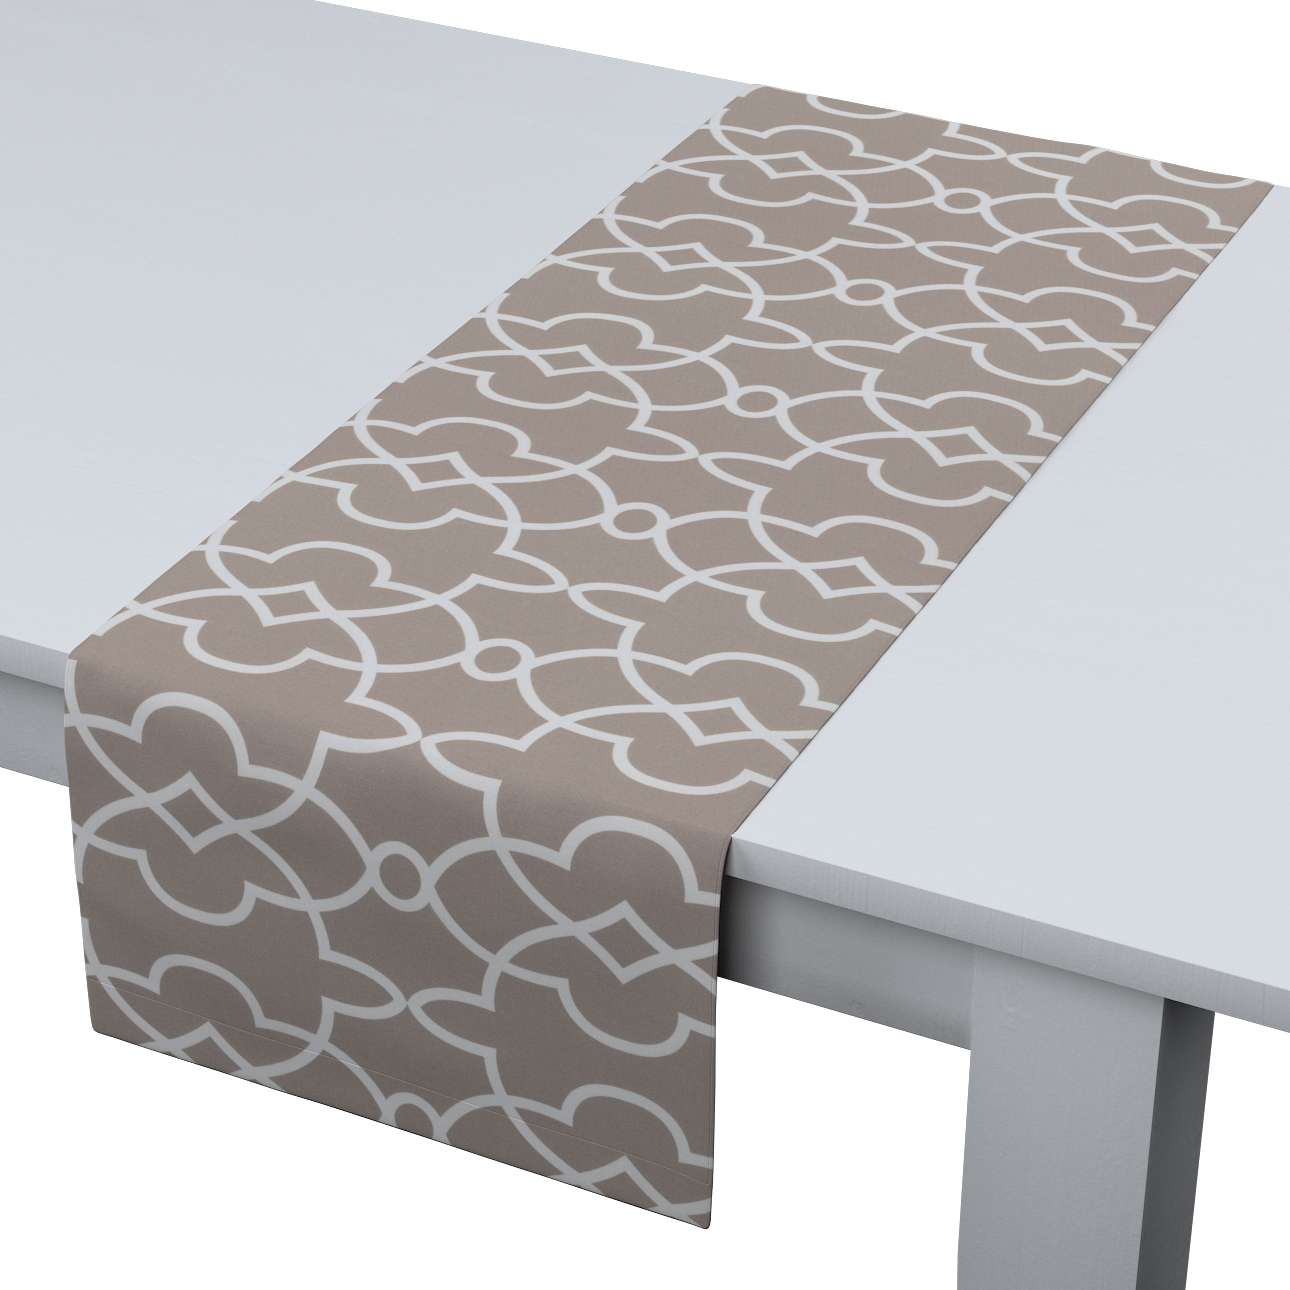 Table runner in collection Gardenia, fabric: 142-20